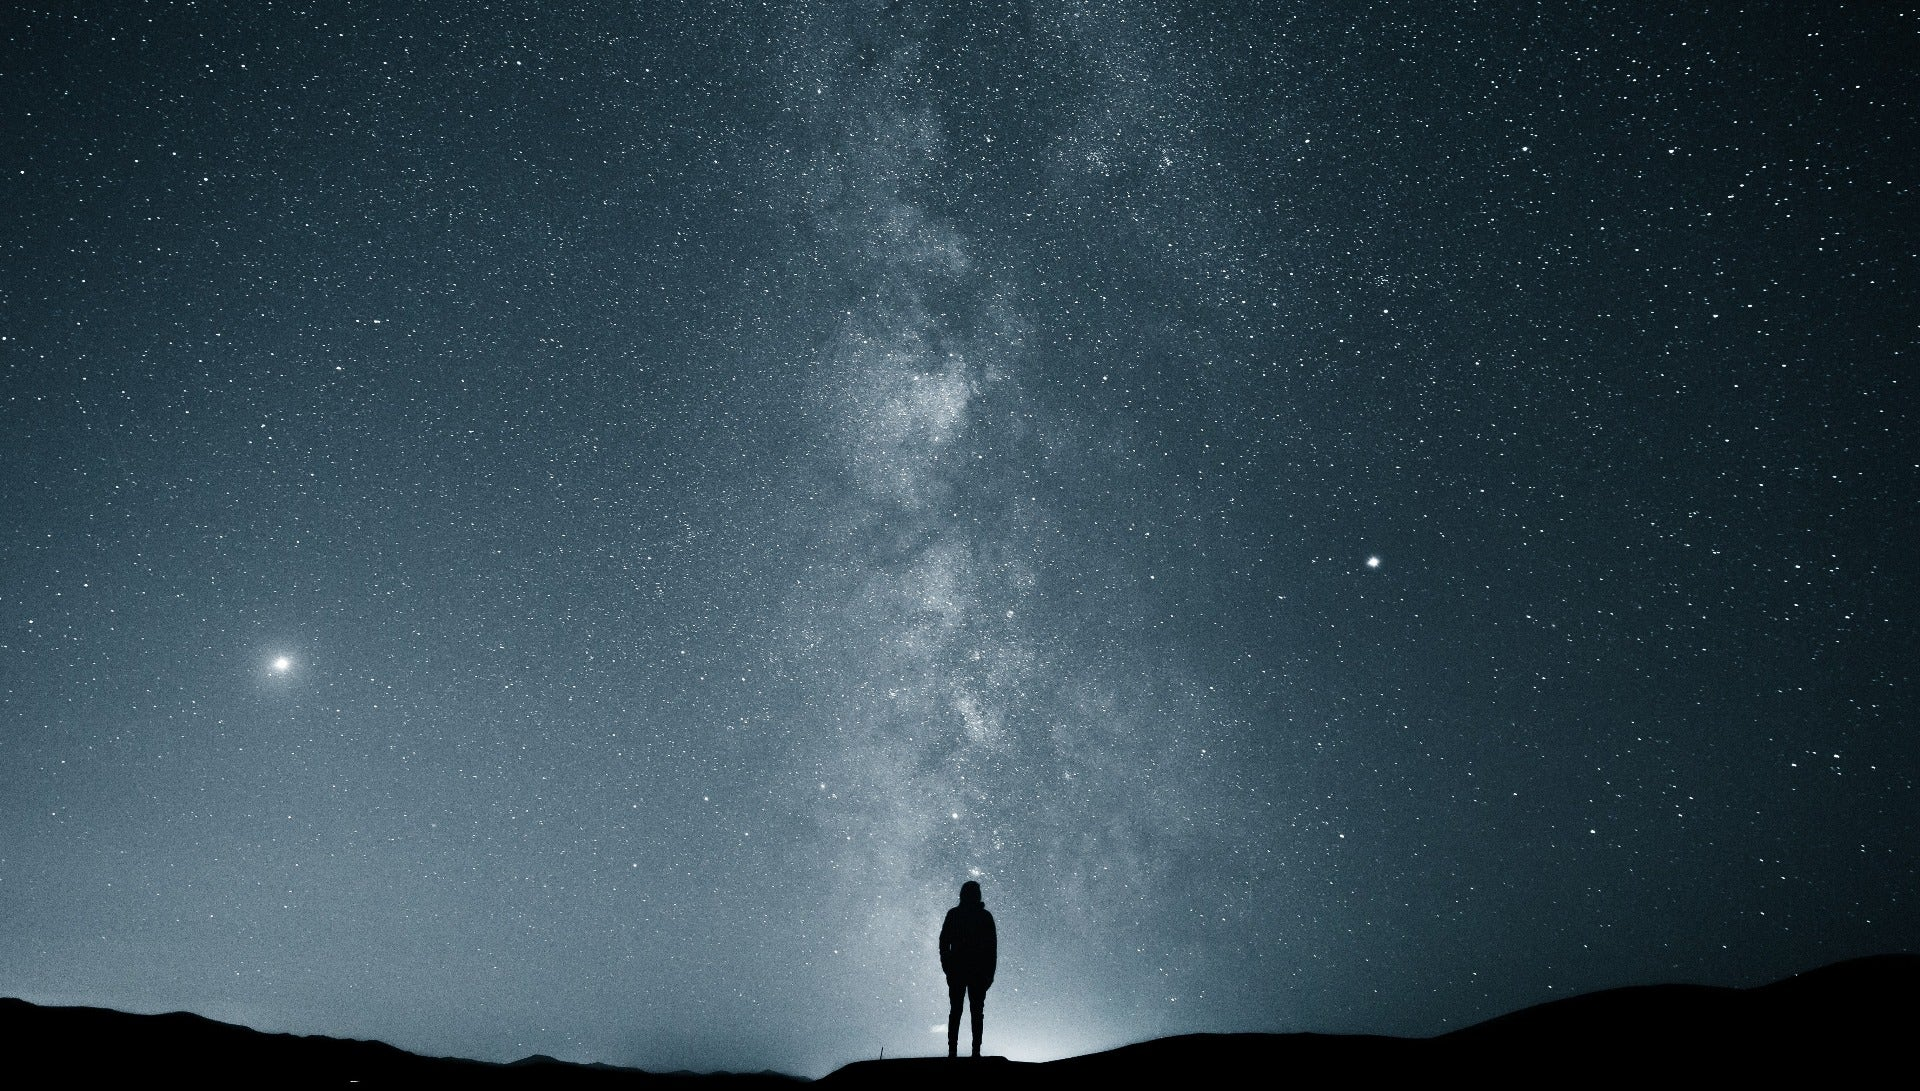 Silhouette of man in front of Milky Way galaxy